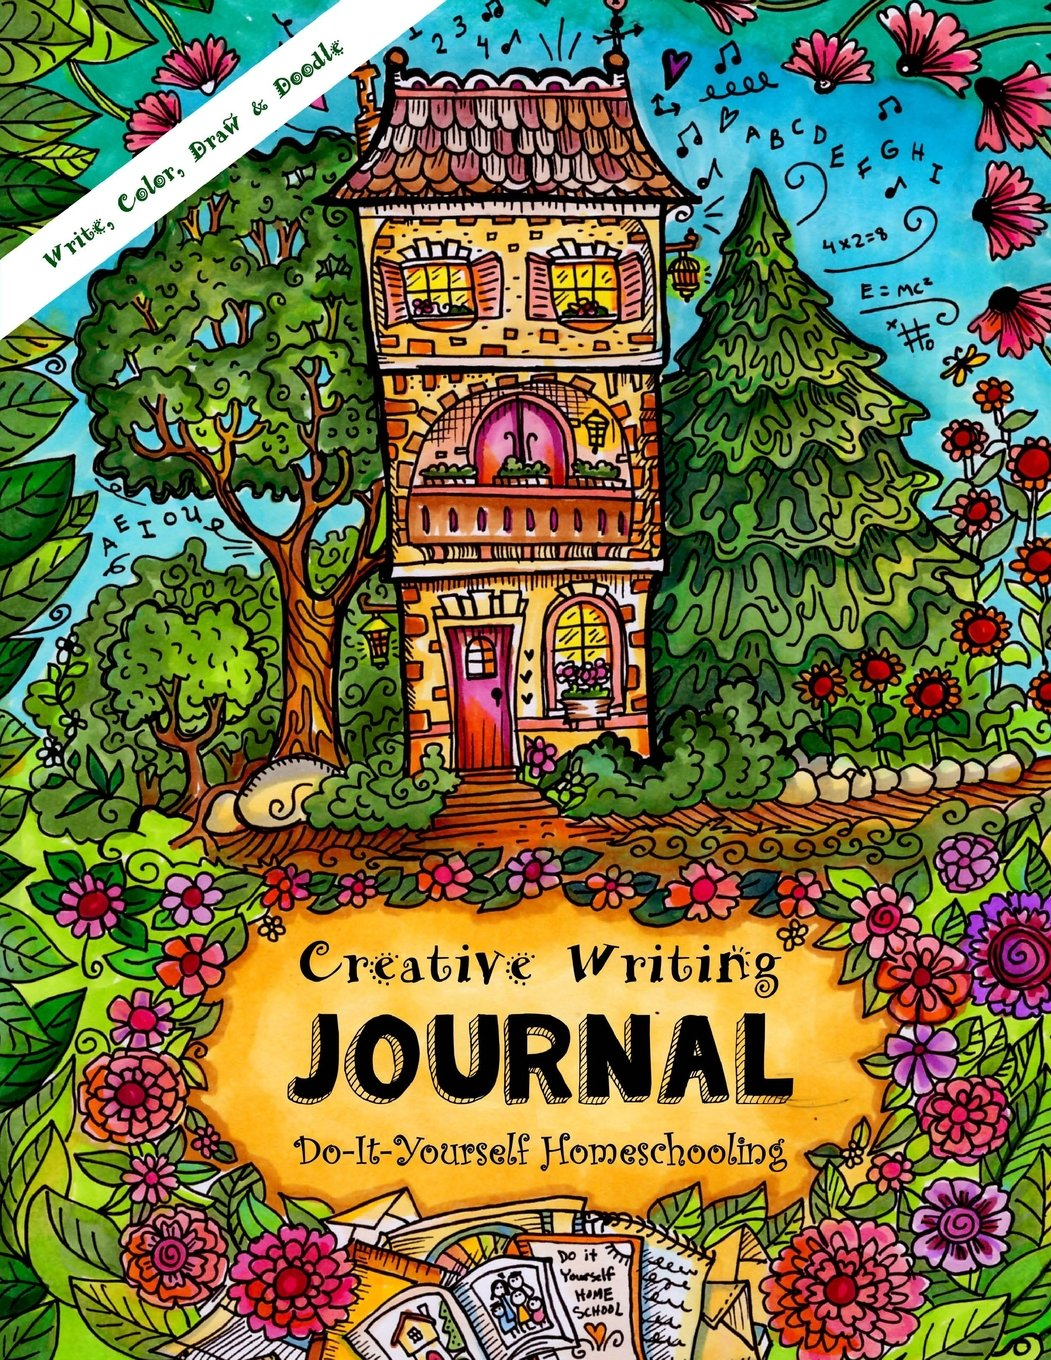 Creative writing journal write your own story color draw creative writing journal write your own story color draw doodle do it yourself homeschooling girls ages 9 and up sarah janisse brown solutioingenieria Gallery